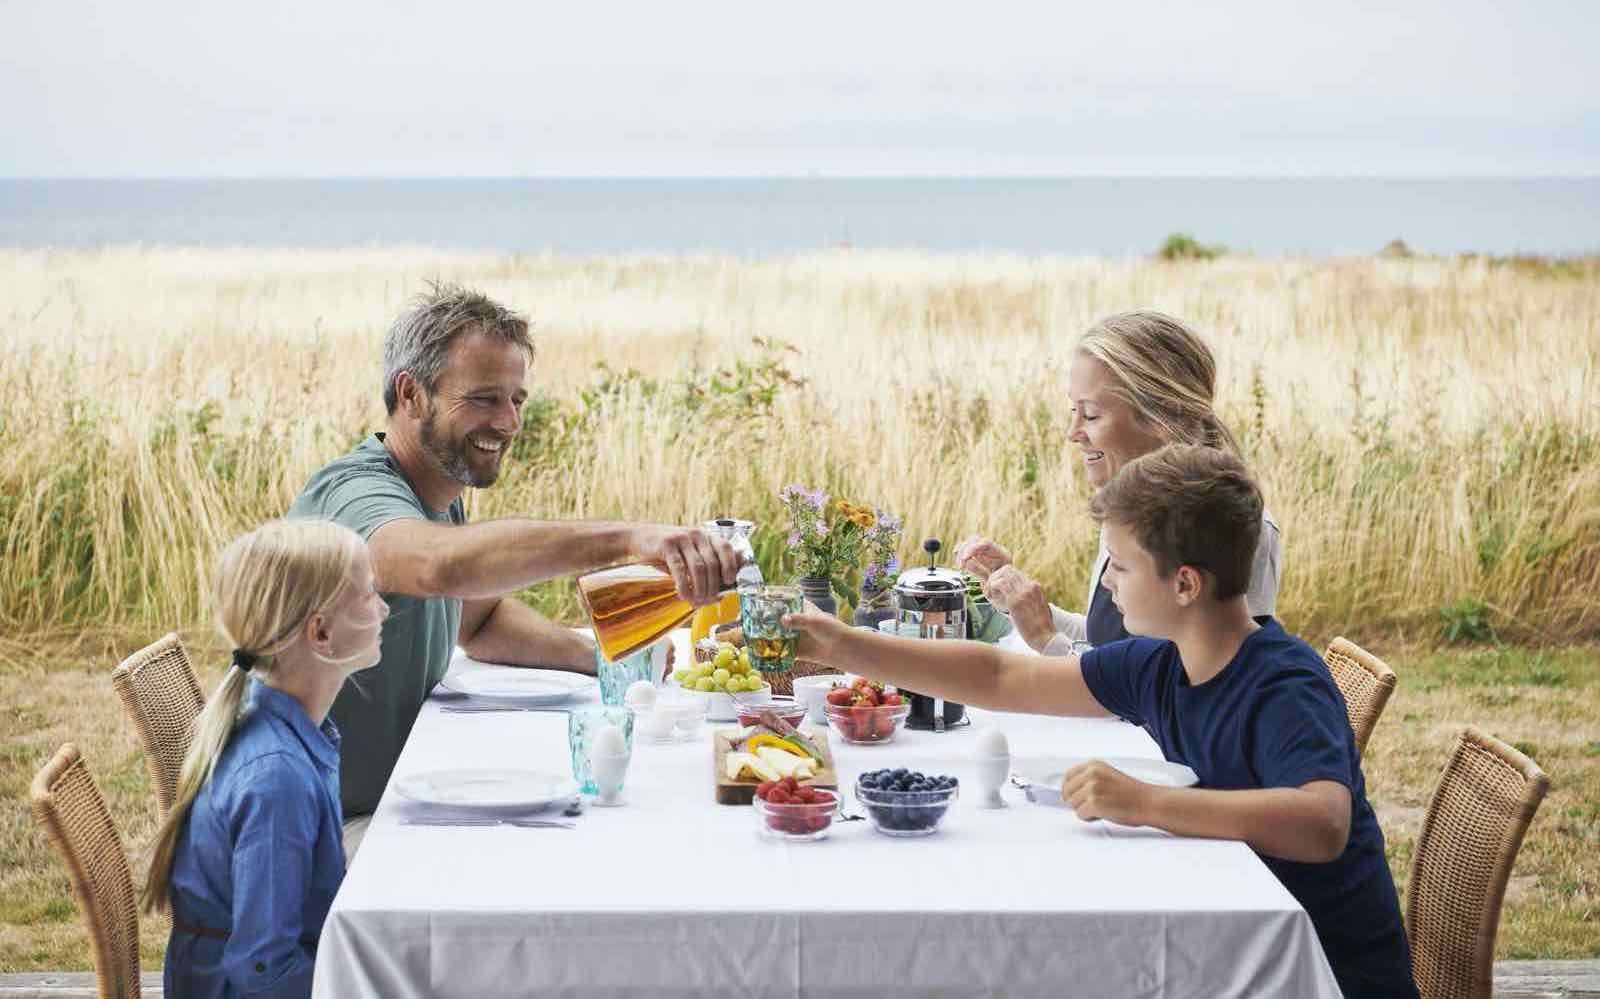 Outdoor breakfast for a Danish family at the seaside